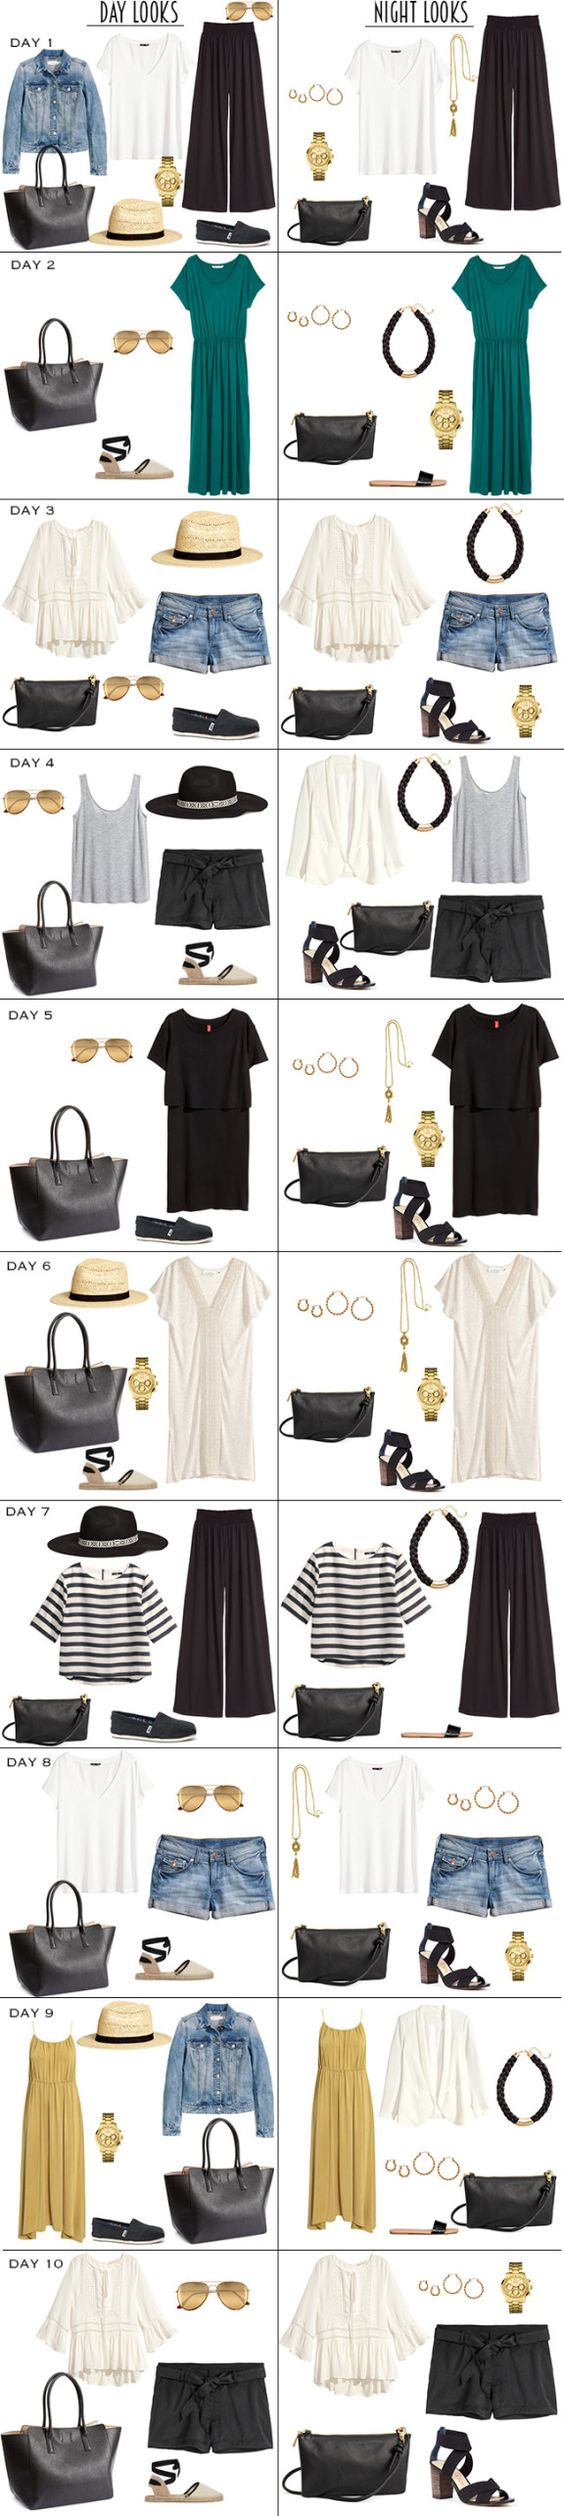 10 Day To Night Looks Carribean: